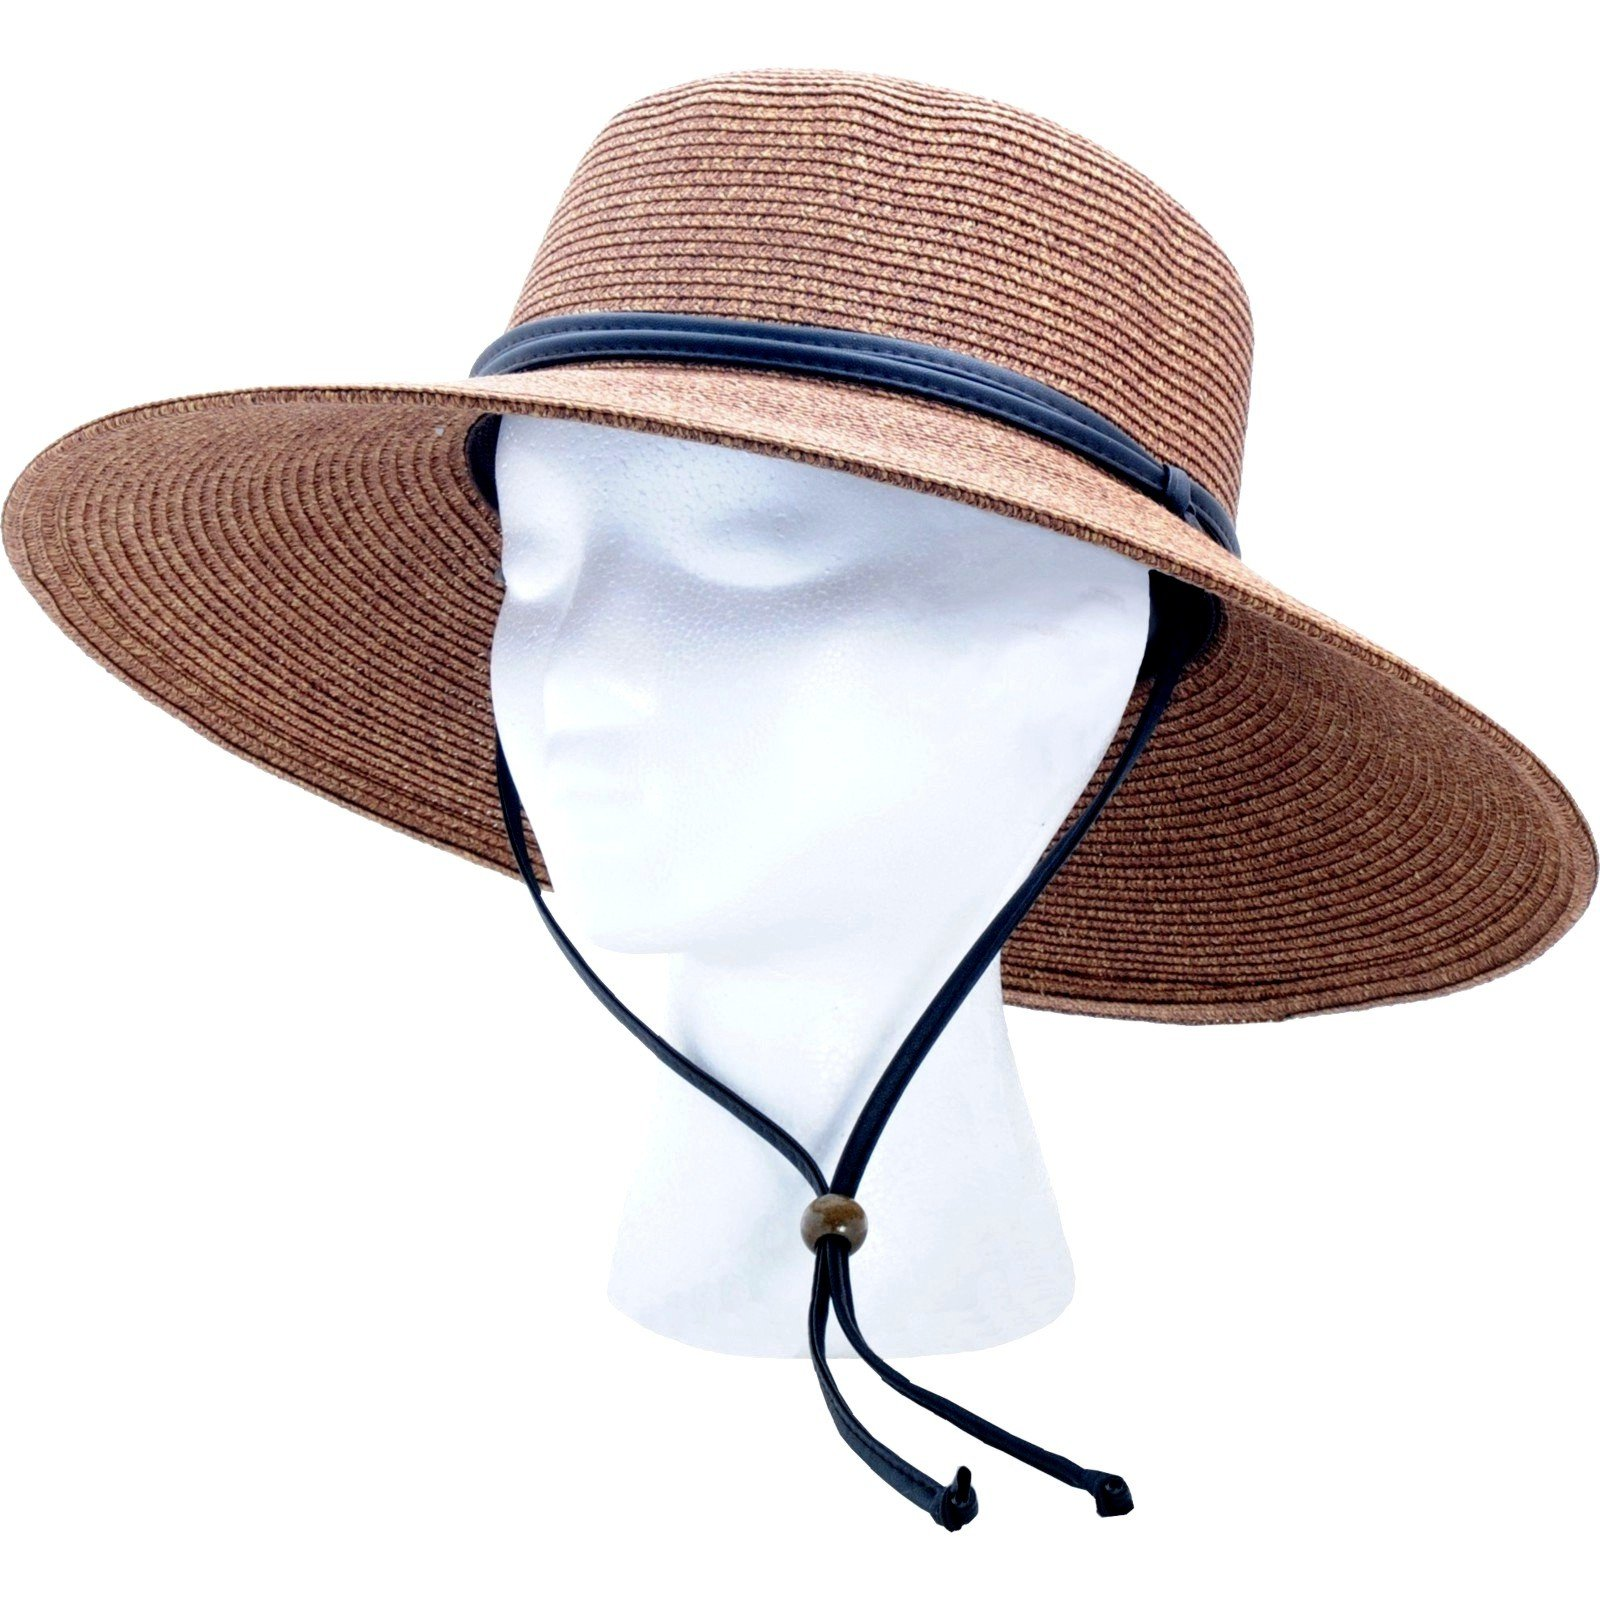 Women's Wide Brim Braided Sun Hat with Wind Lanyard